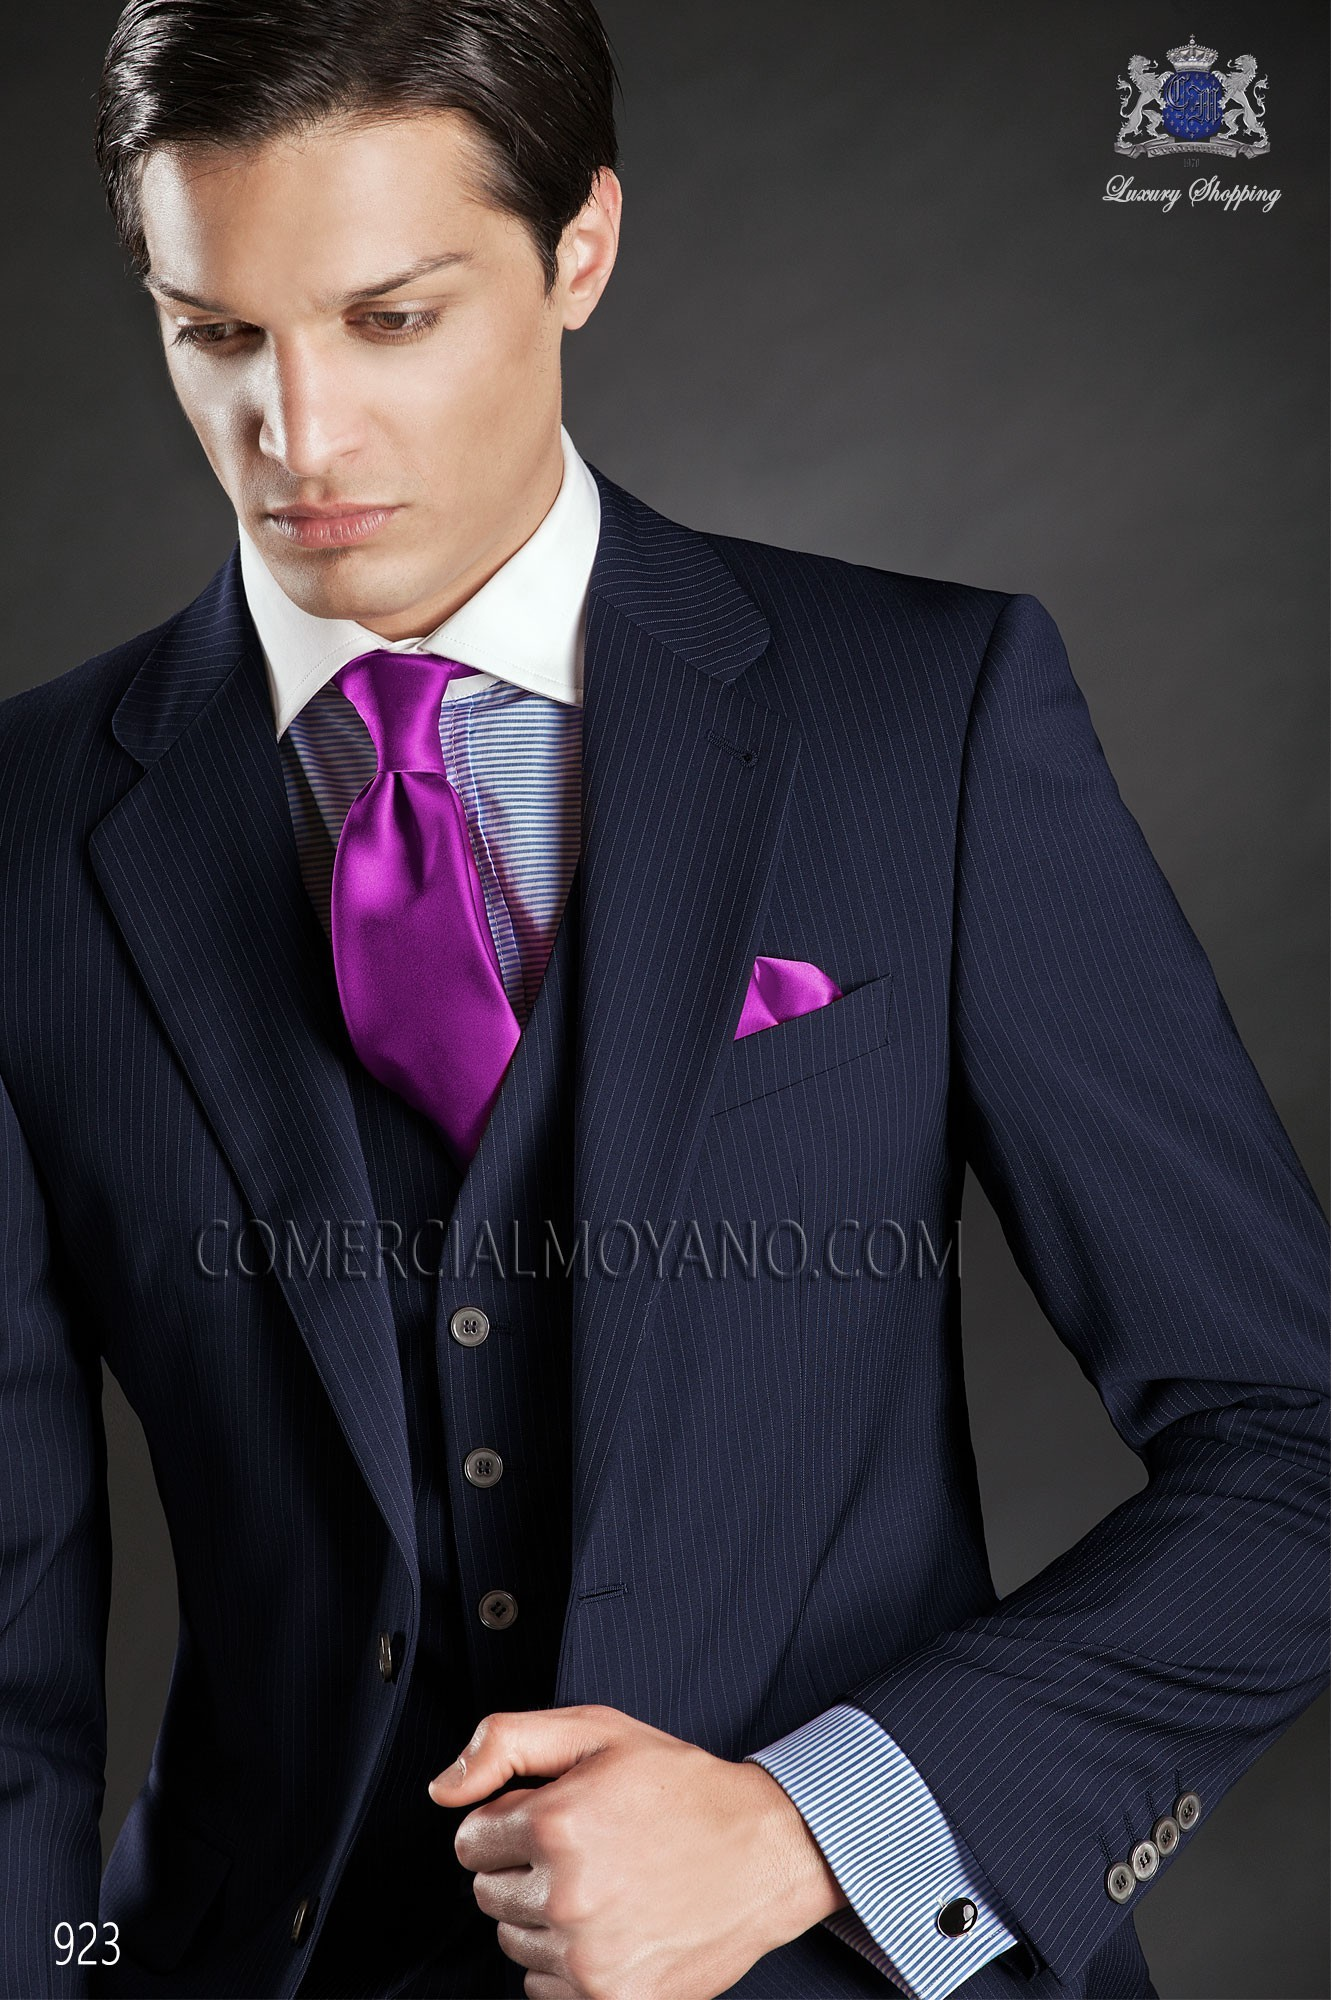 Gentleman blue men wedding suit model 923 Ottavio Nuccio Gala